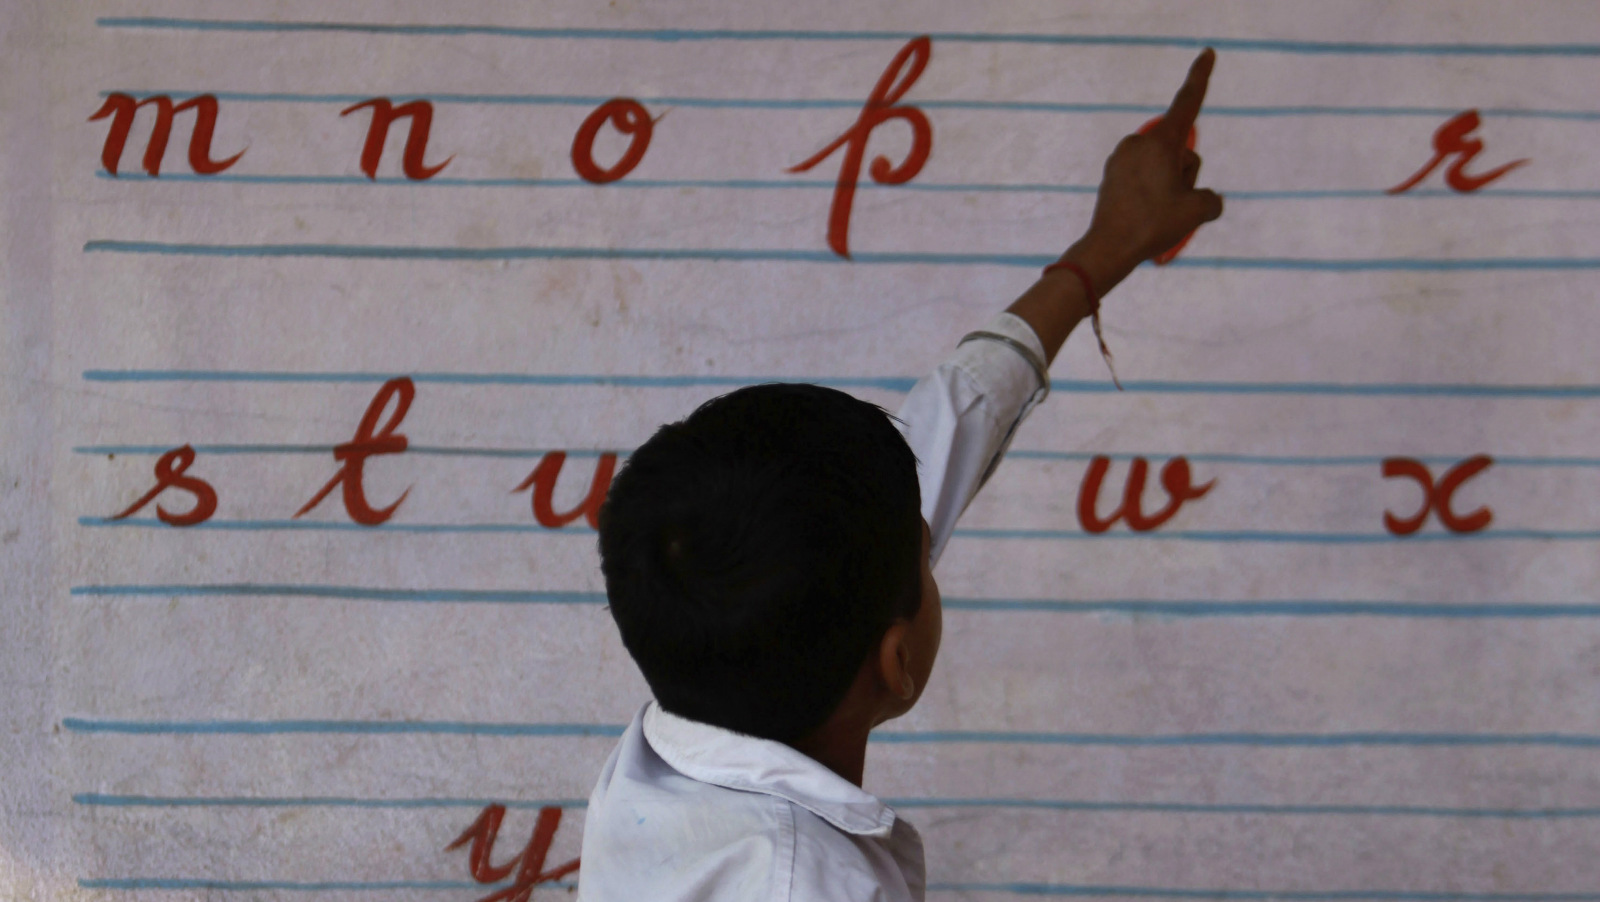 An Indian HIV positive child reads out the English alphabets at a school on the eve of World AIDS Day in Akhnoor, 50 kilometers (30 miles) from Jammu, India, Tuesday, Nov. 30, 2010. (AP Photo/Channi Anand)